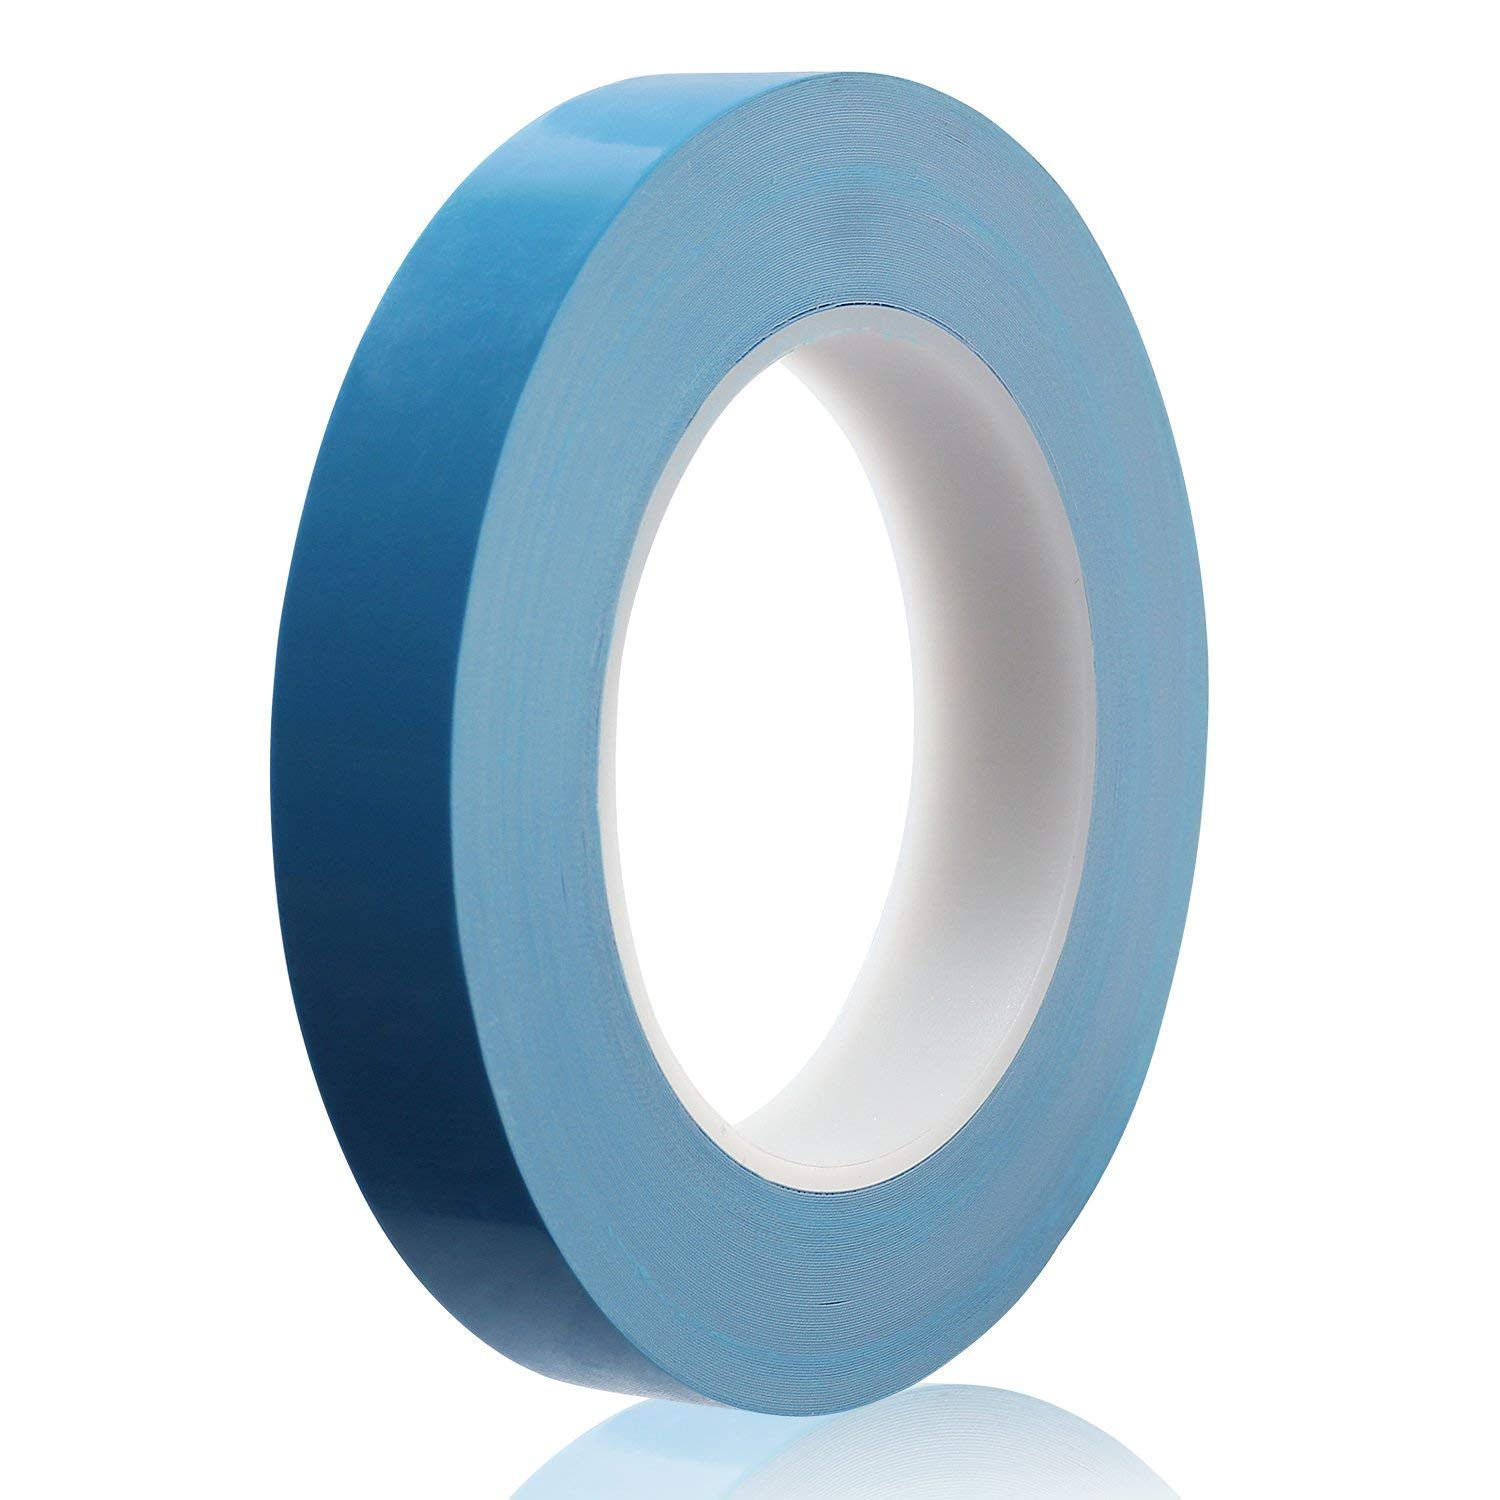 Thermal Adhesive Conductive Tape Double Sided Cooling Tapes 82ft 30mm